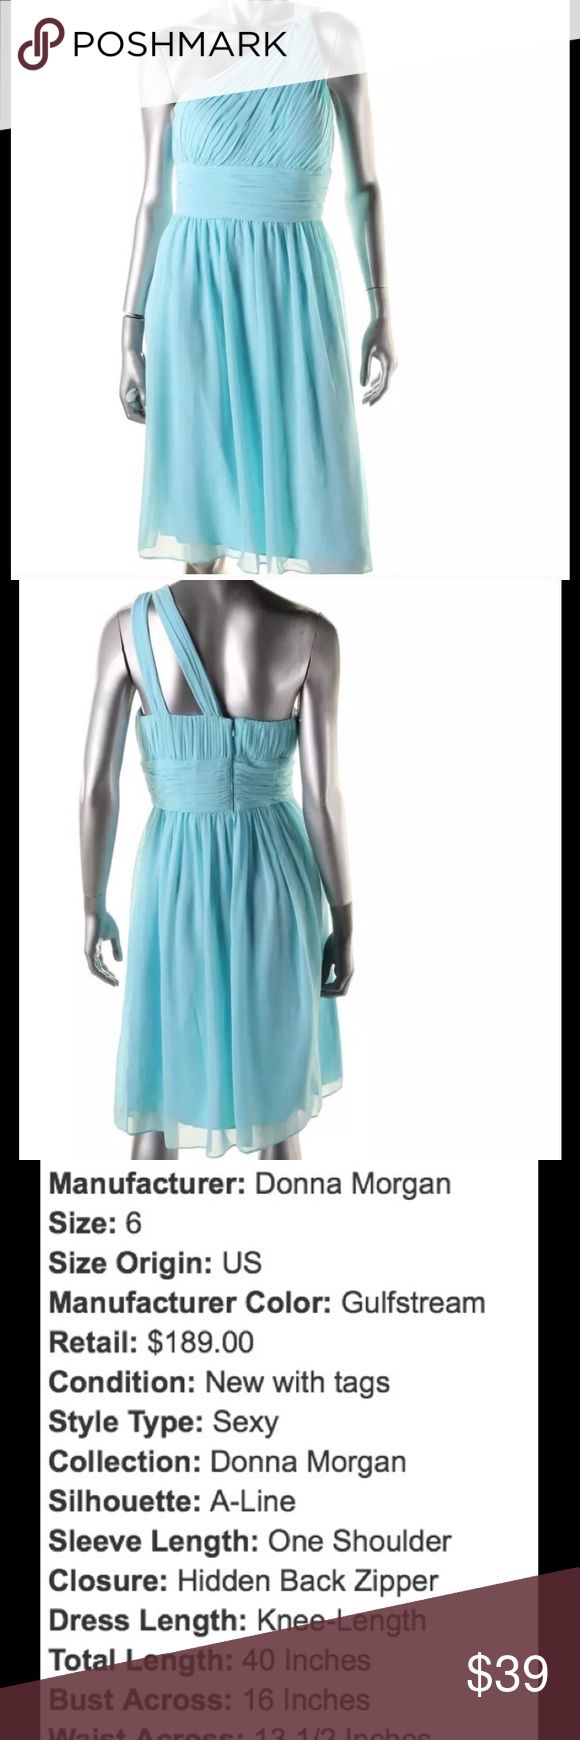 NWT Prom dress Chiffon women's 6 cocktail party This is a beautiful, stunning Chiffon Gulf Stream color Donna Morgan dress.  This dress is NEW with Tags and comes from a smoke free home.  This dress retails for $189.00 I am selling it for just a small fraction of the price.  More measurements and description in pics.  Buy with confidence I am a top rated seller, mentor and fast shipper.  Don't forget to bundle and save.  Thank you. Donna Morgan Dresses One Shoulder